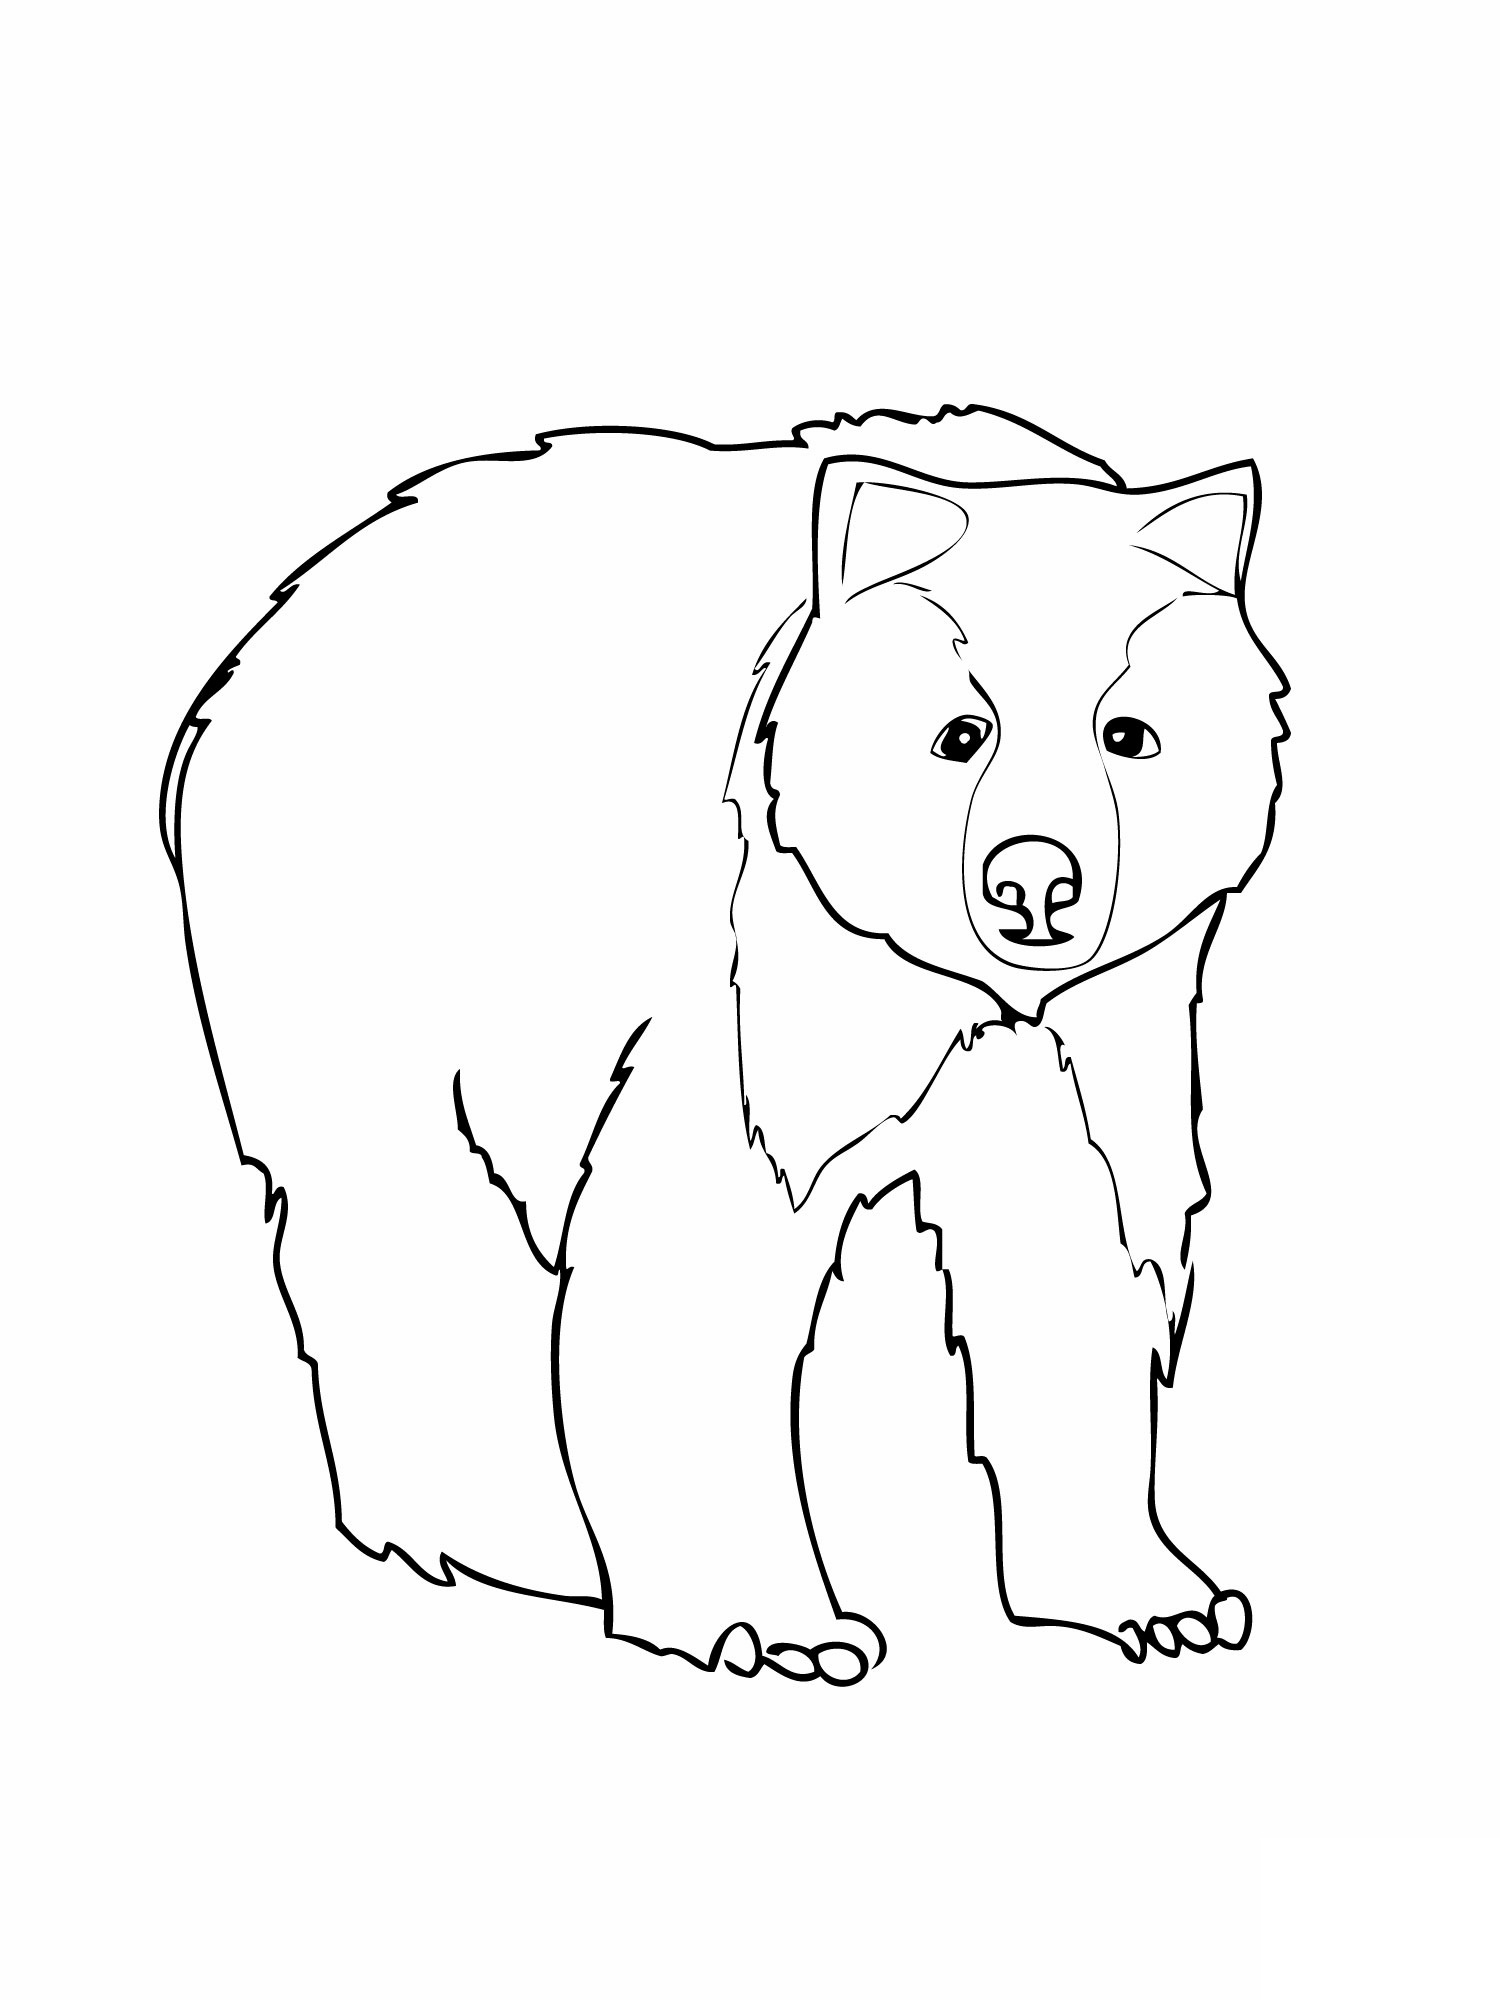 Polar animals coloring pages for kids - Bear Coloring Page